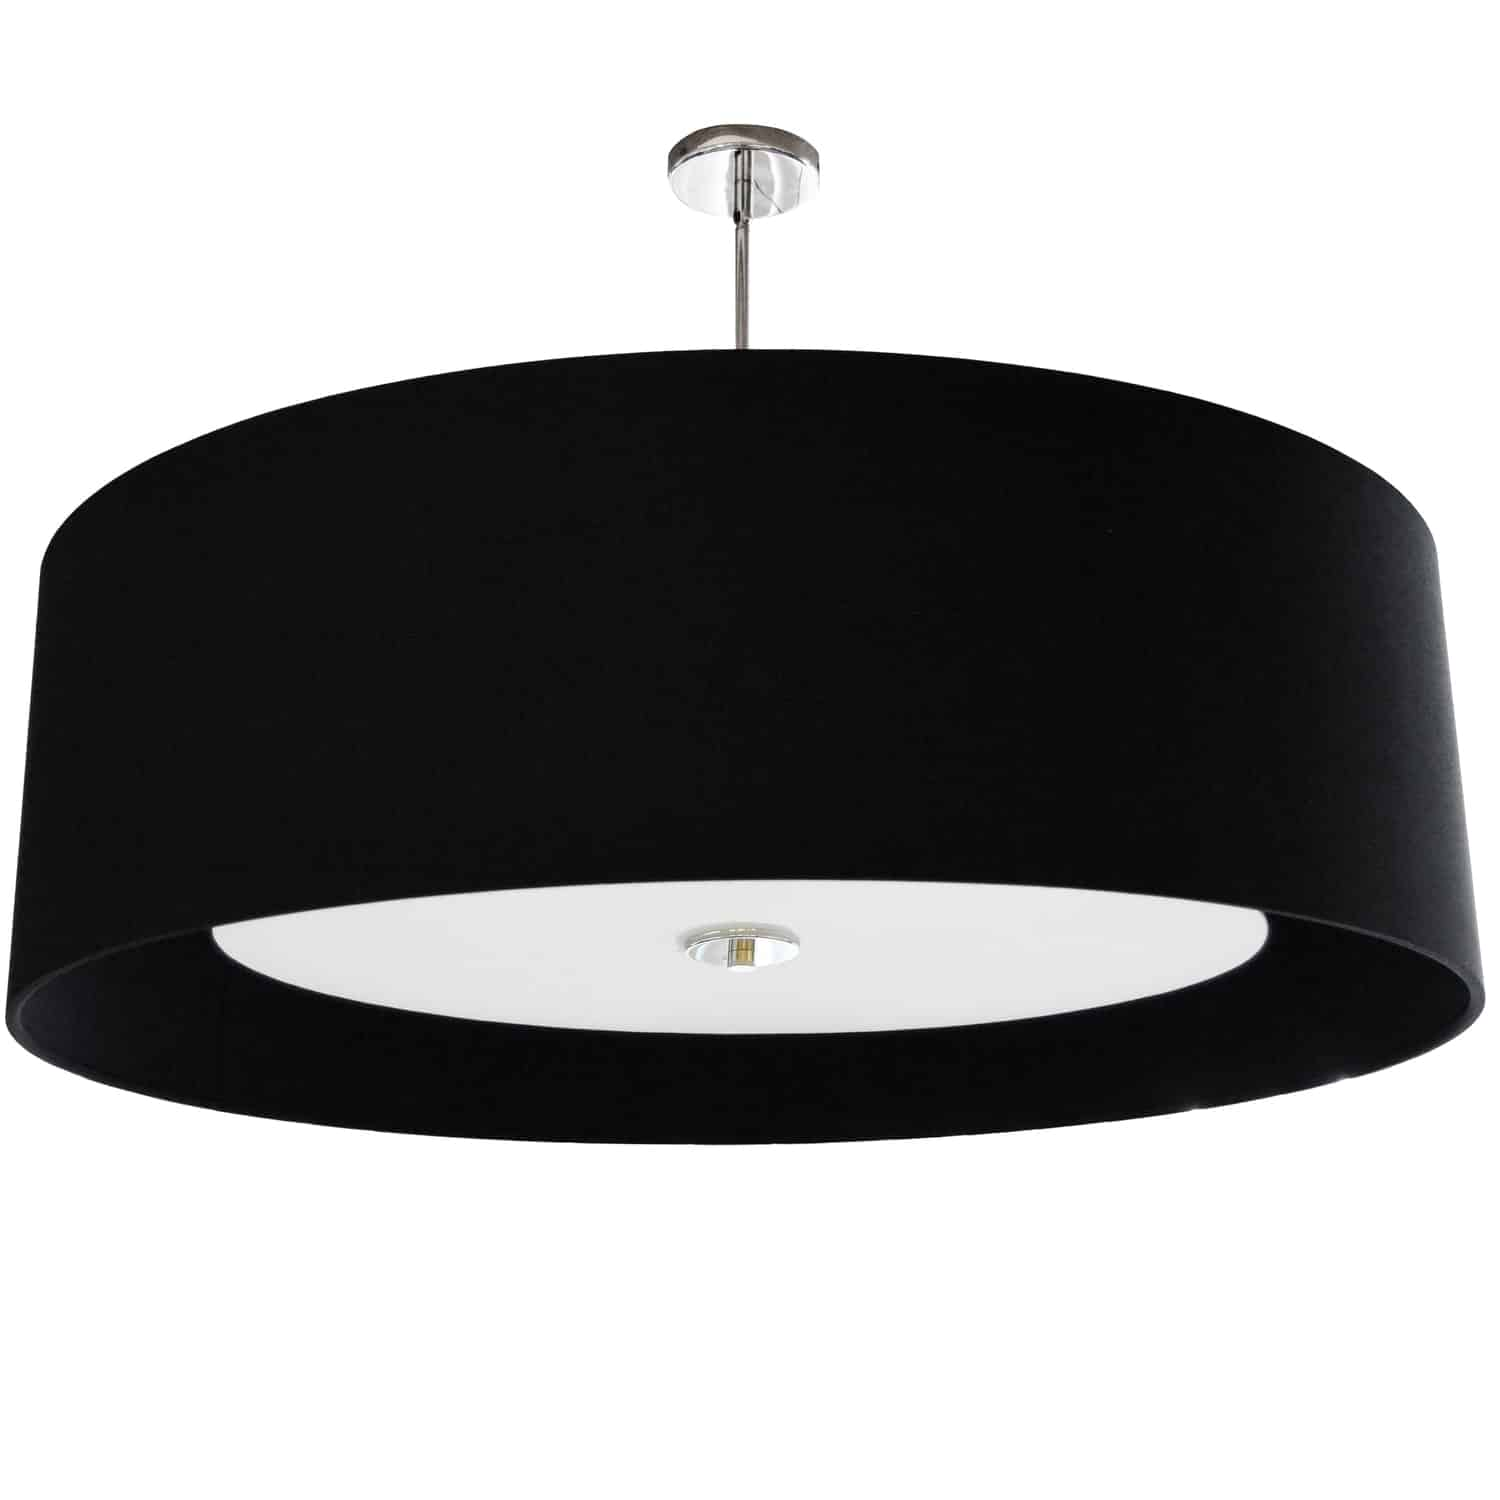 4 Light Helena Pendant Polished Chrome Black with White Diffuser